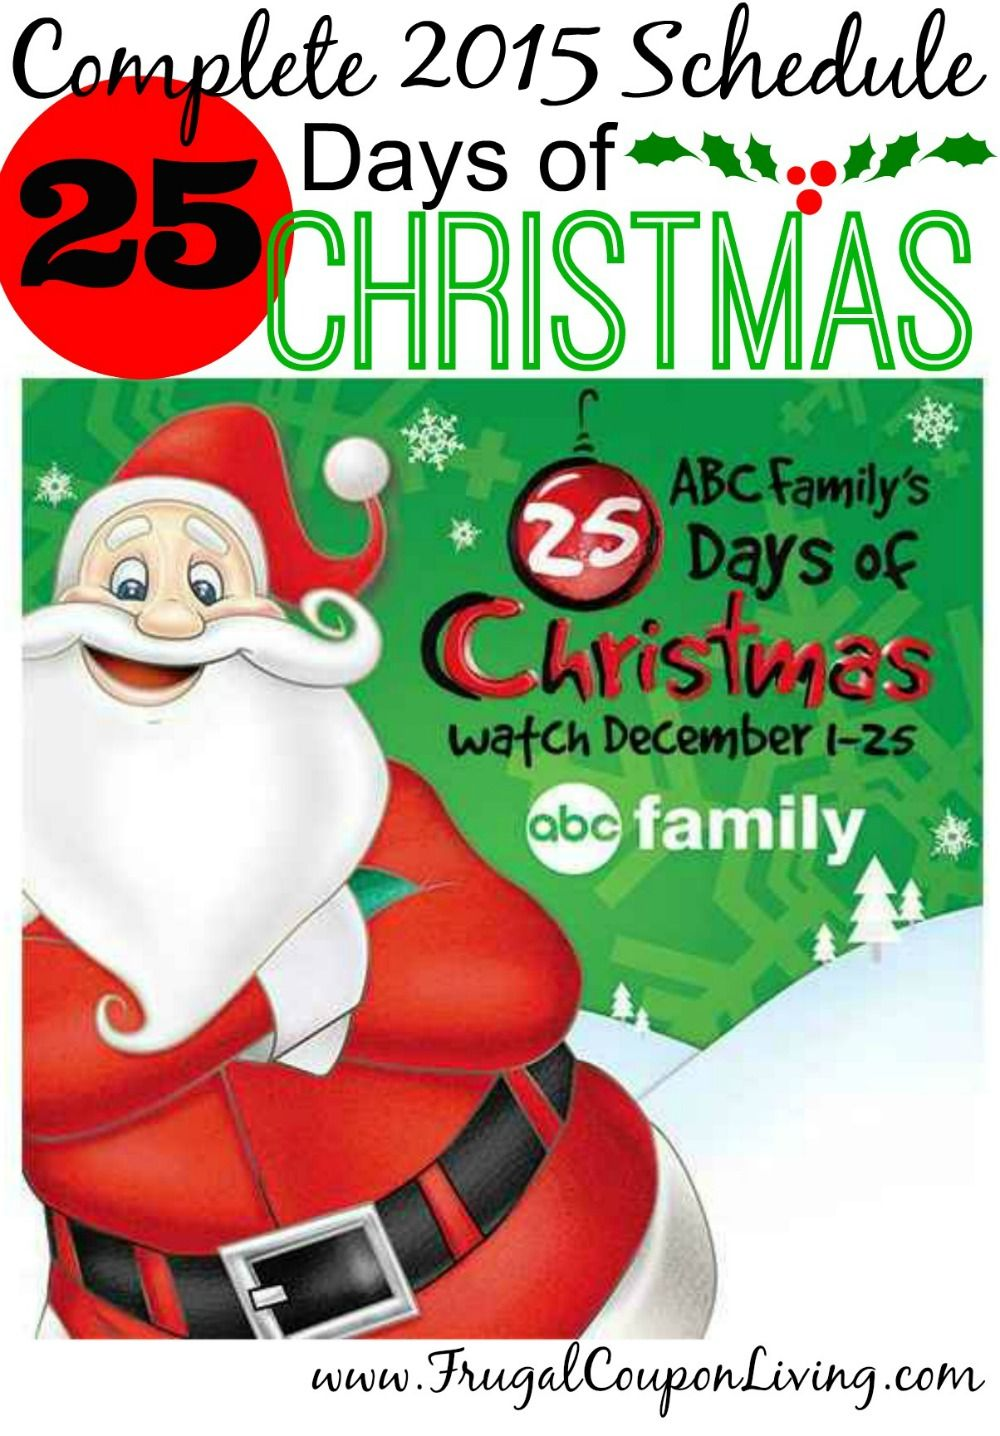 ABC Family 25 Days of Christmas 2015 Schedule | ABC Family, Frugal ...